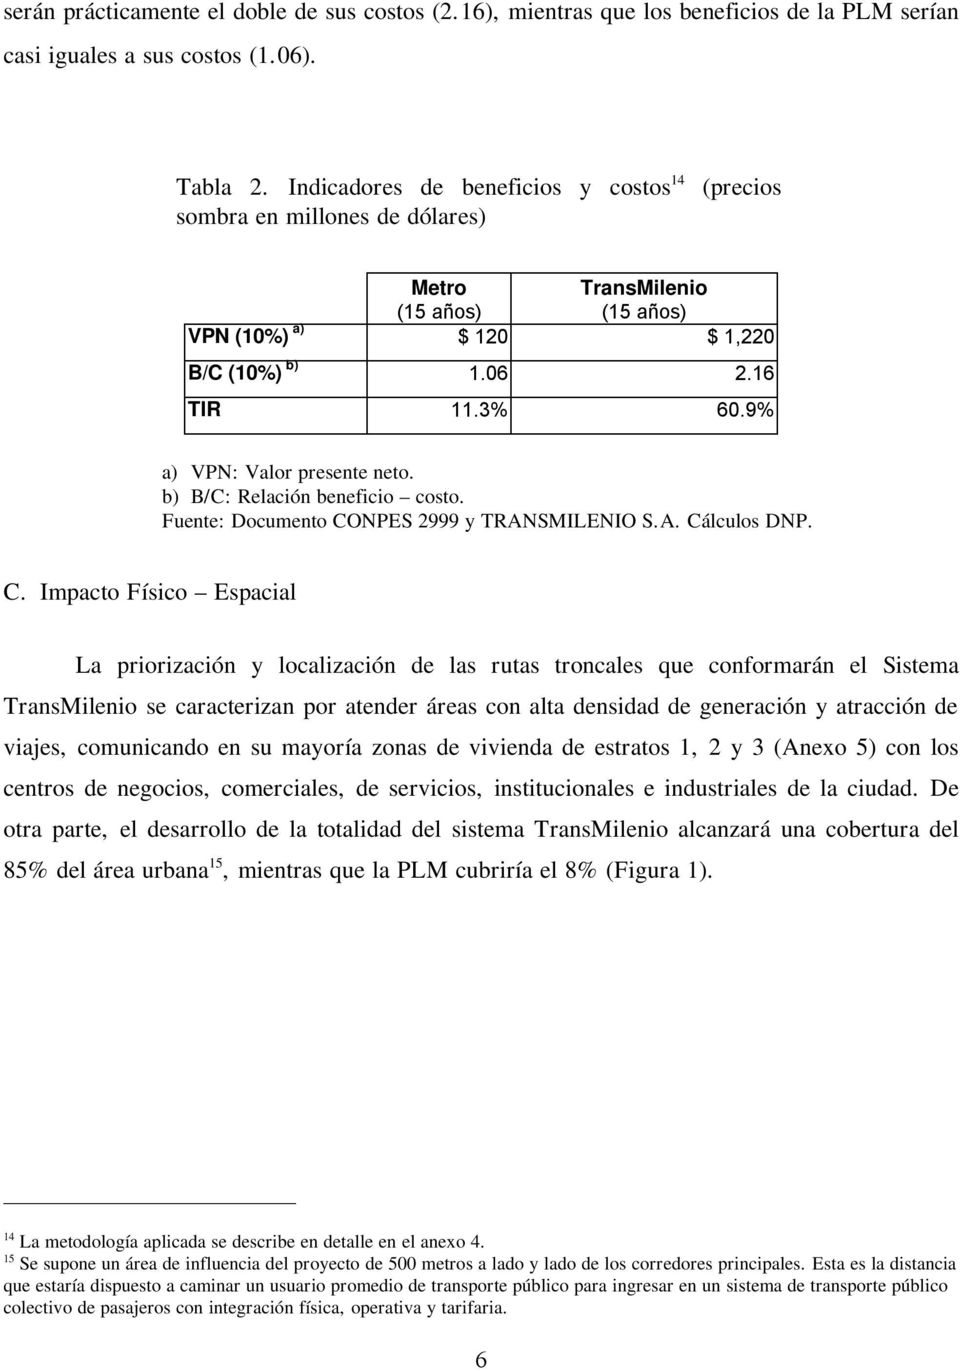 9% a) VPN: Valor presente neto. b) B/C: Relación beneficio costo. Fuente: Documento CO